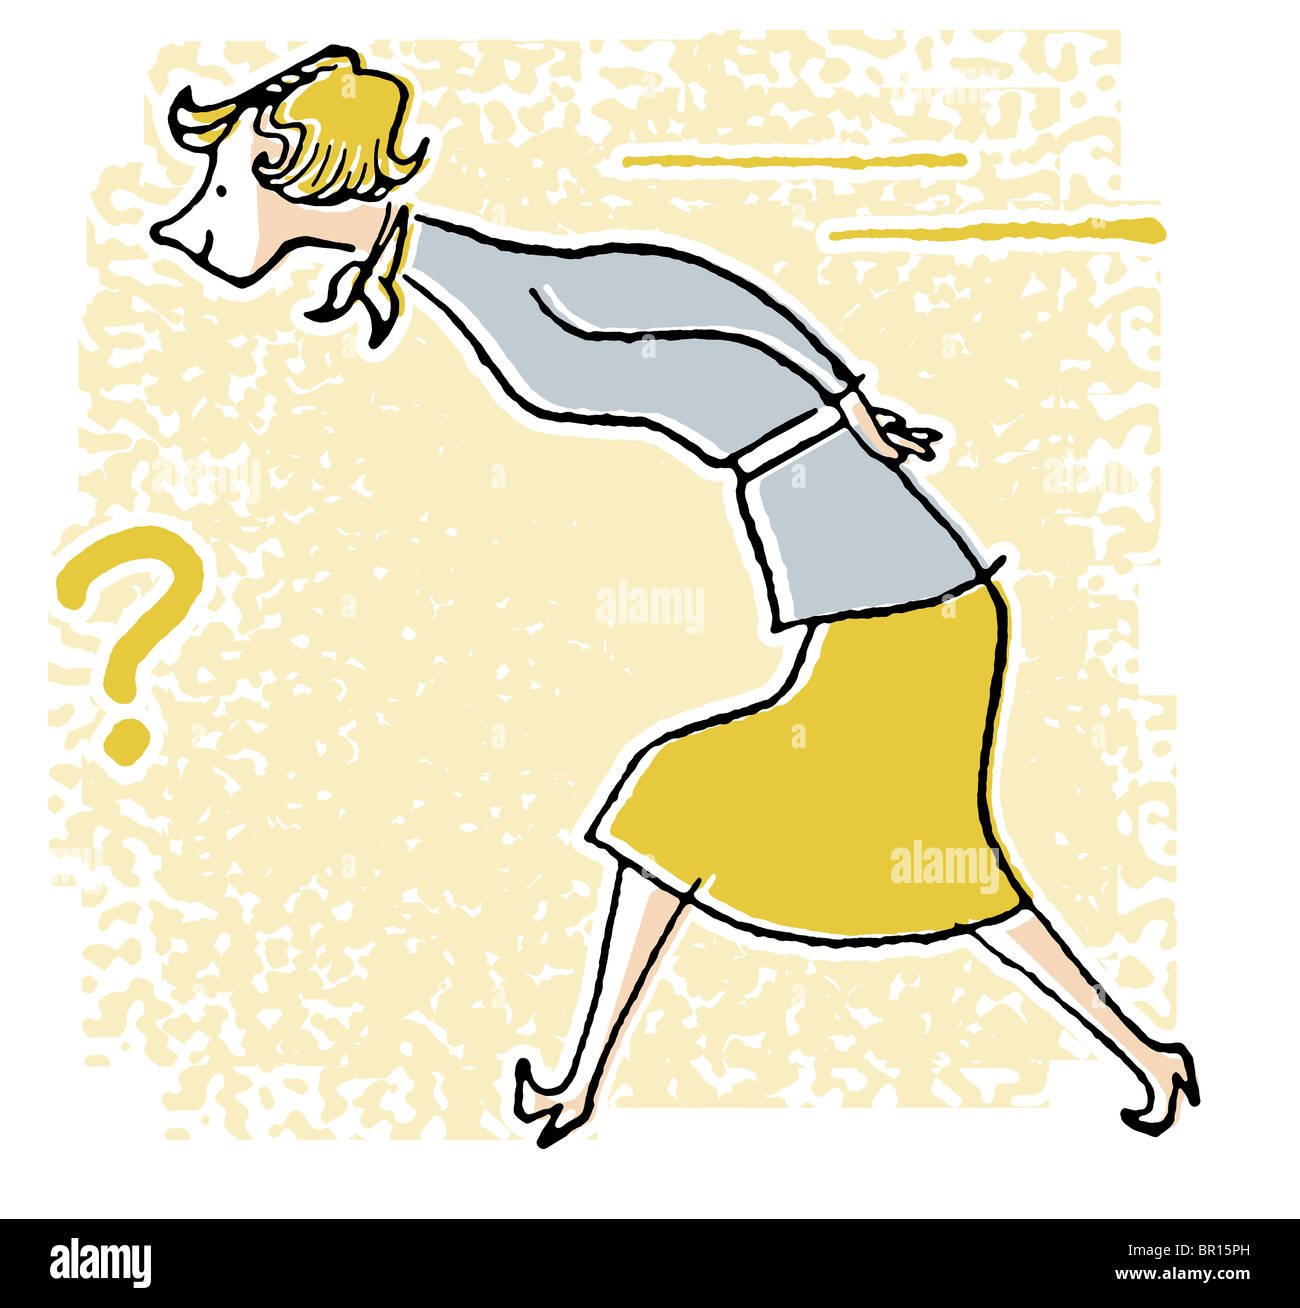 A cartoon style vintage image of a woman on a mission - Stock Image